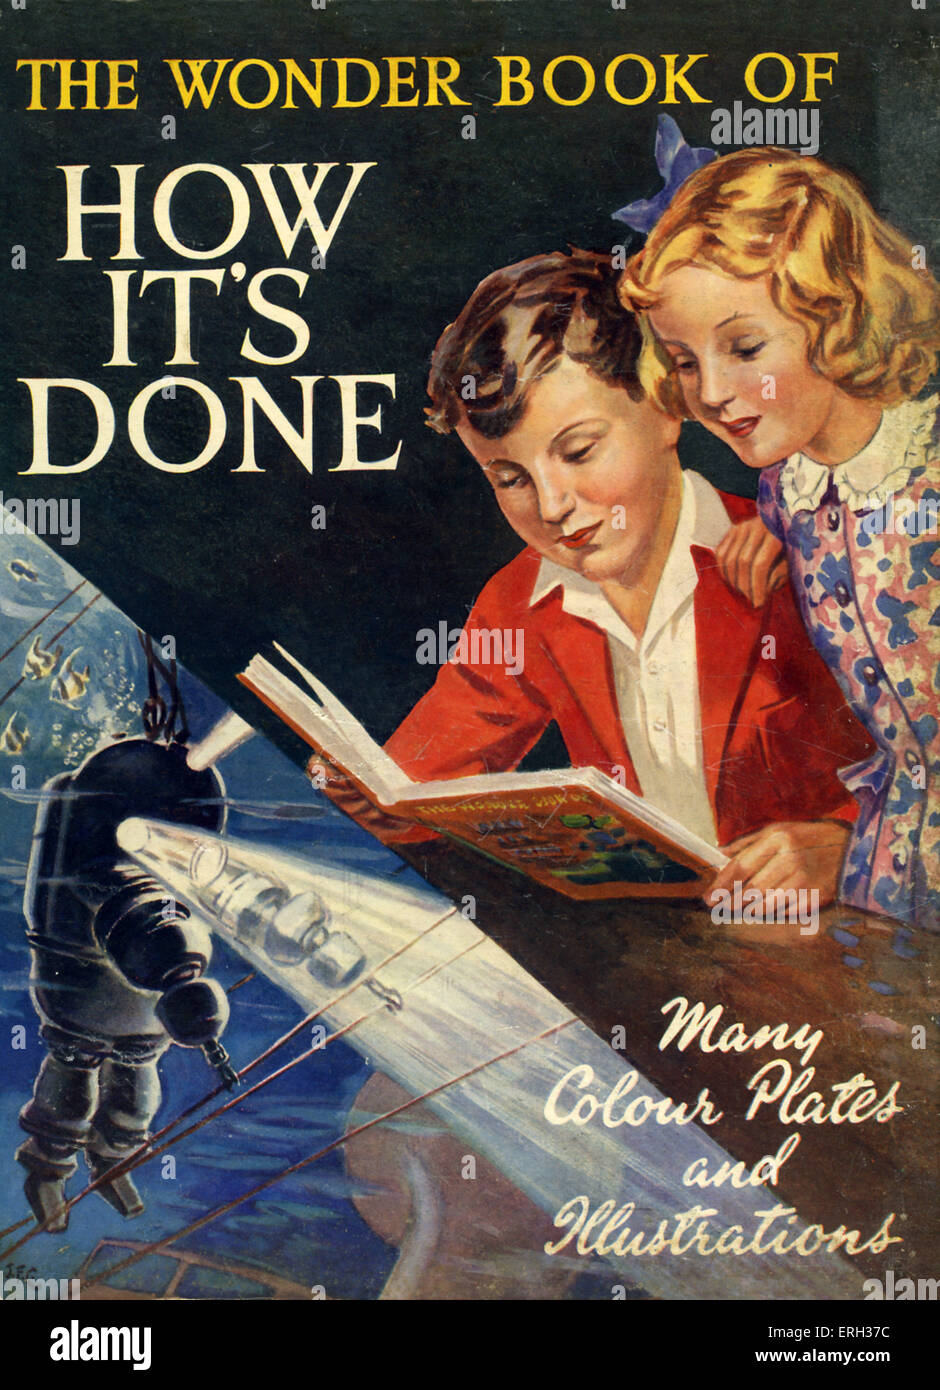 The Wonder Book of How It's Done. Children's reference book, published early 1950s. Front cover. - Stock Image